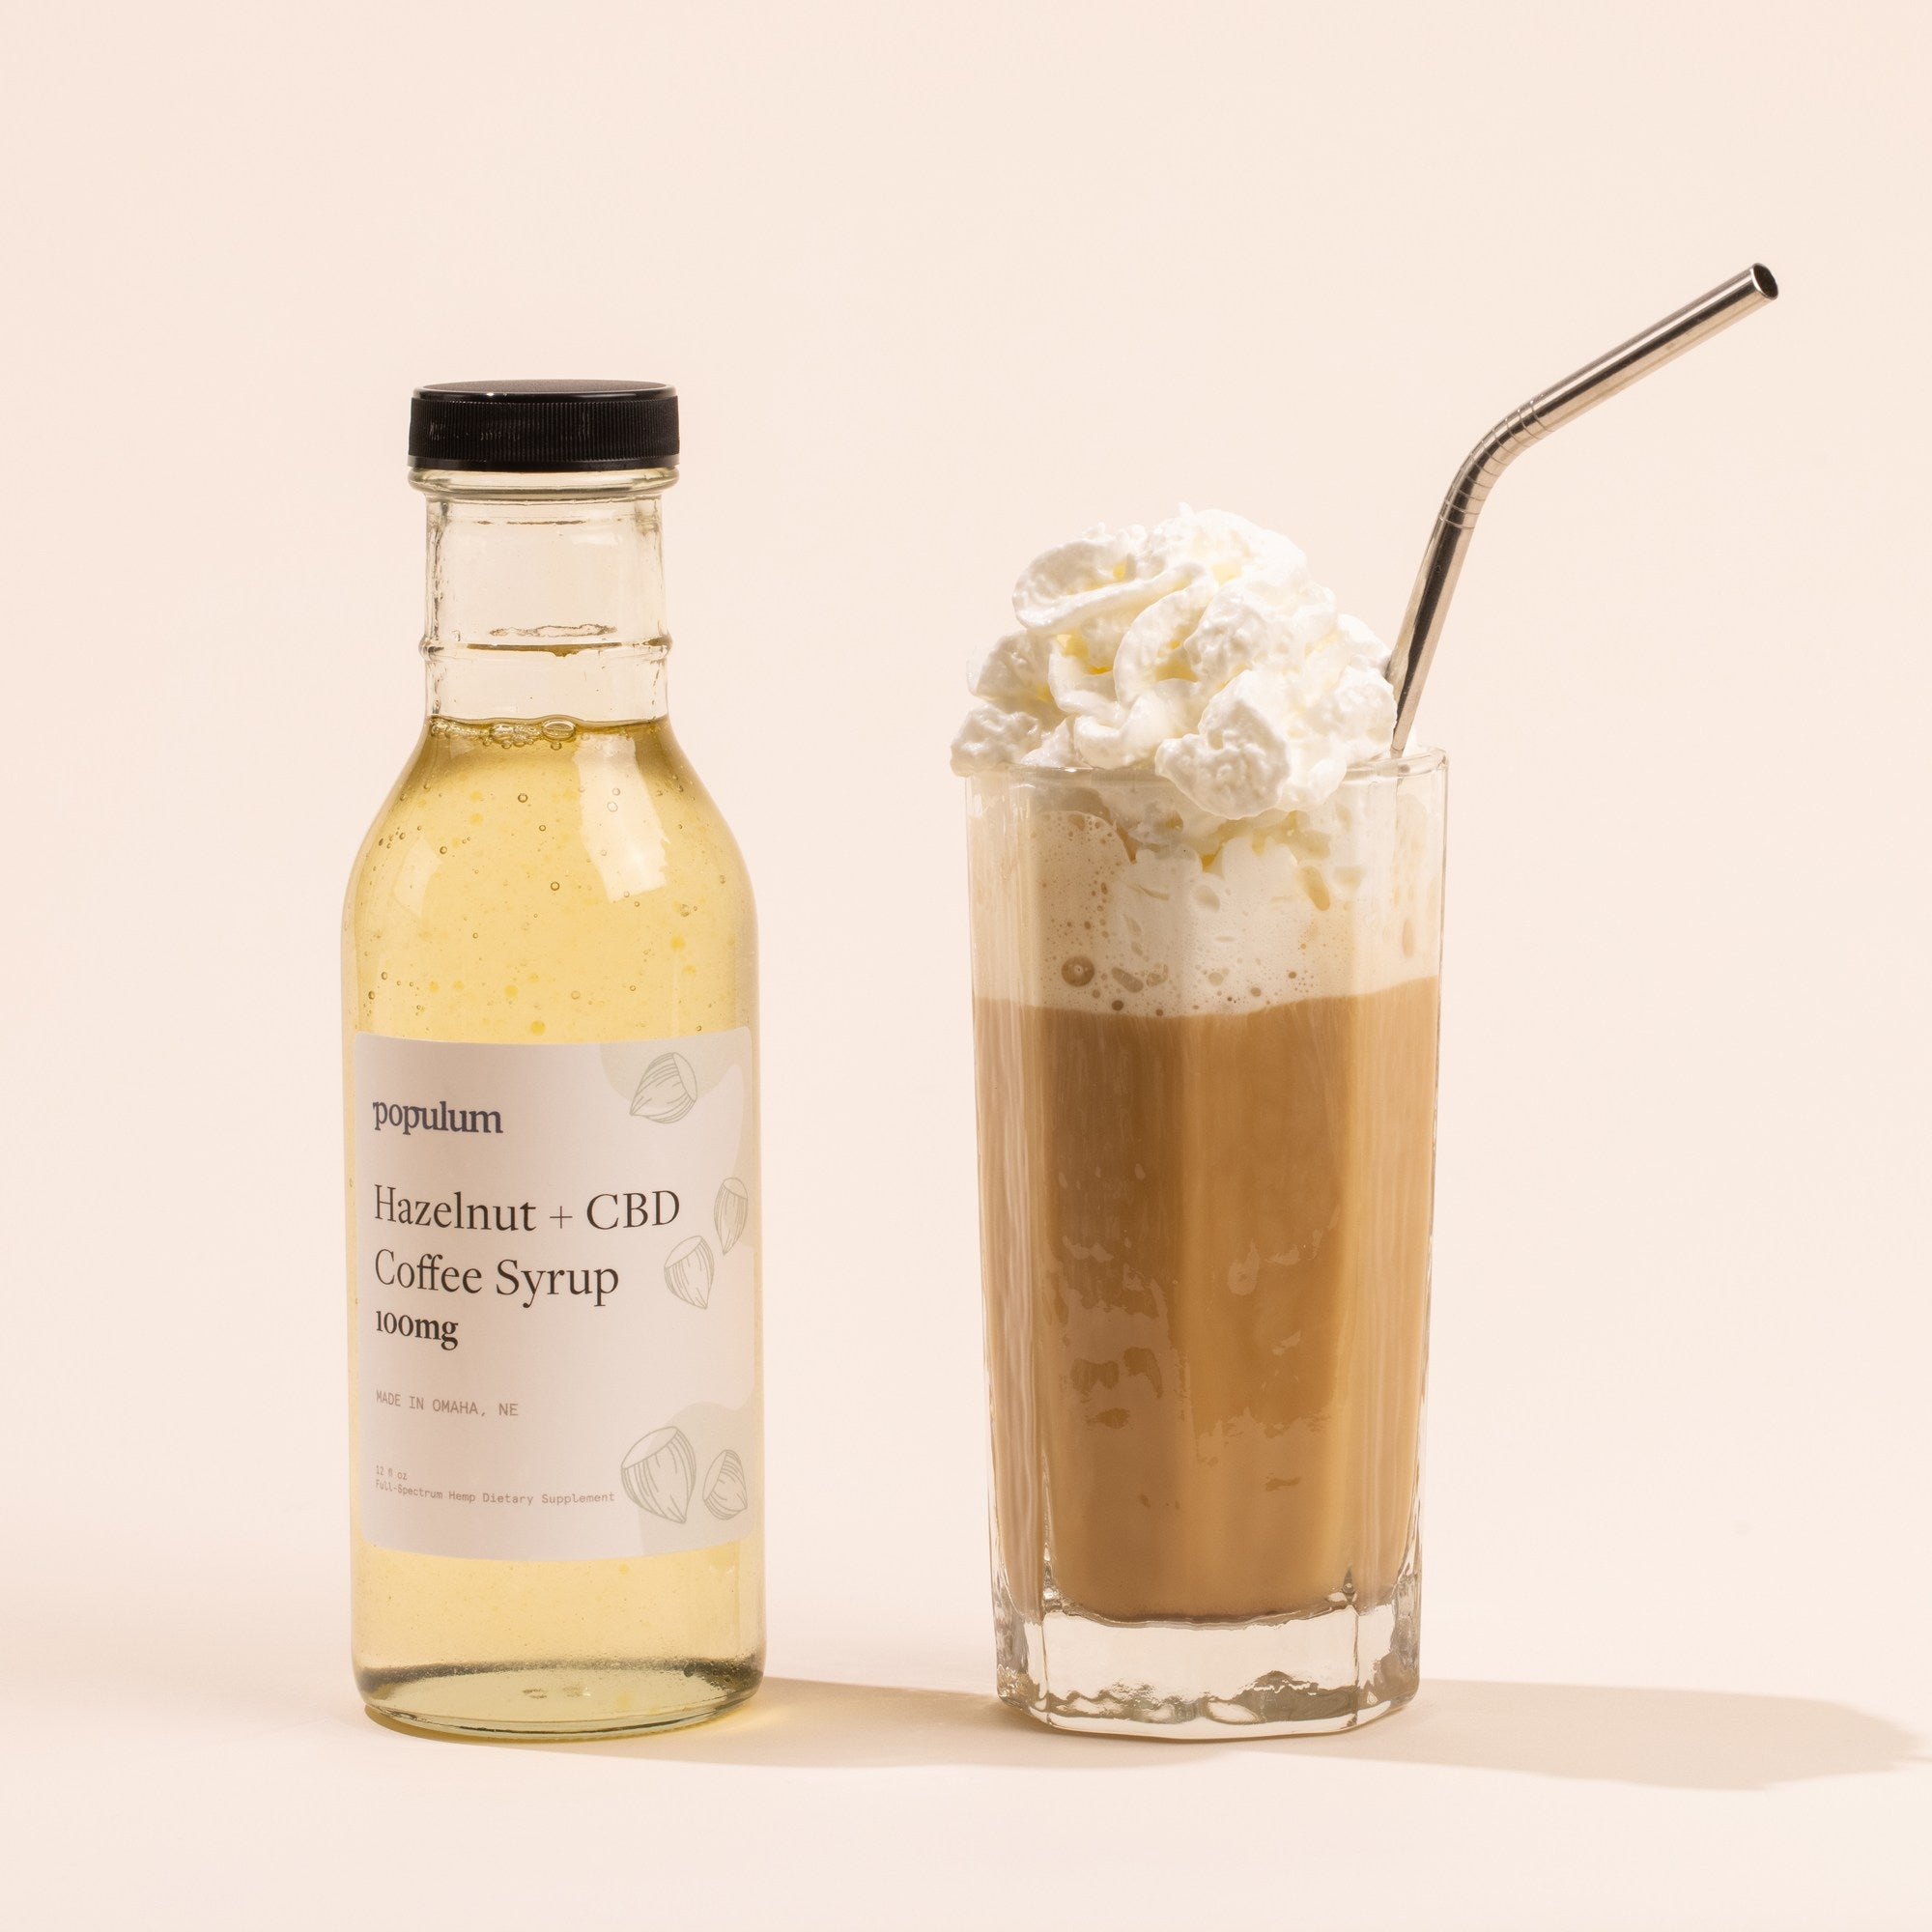 Hazelnut + CBD Coffee Syrup